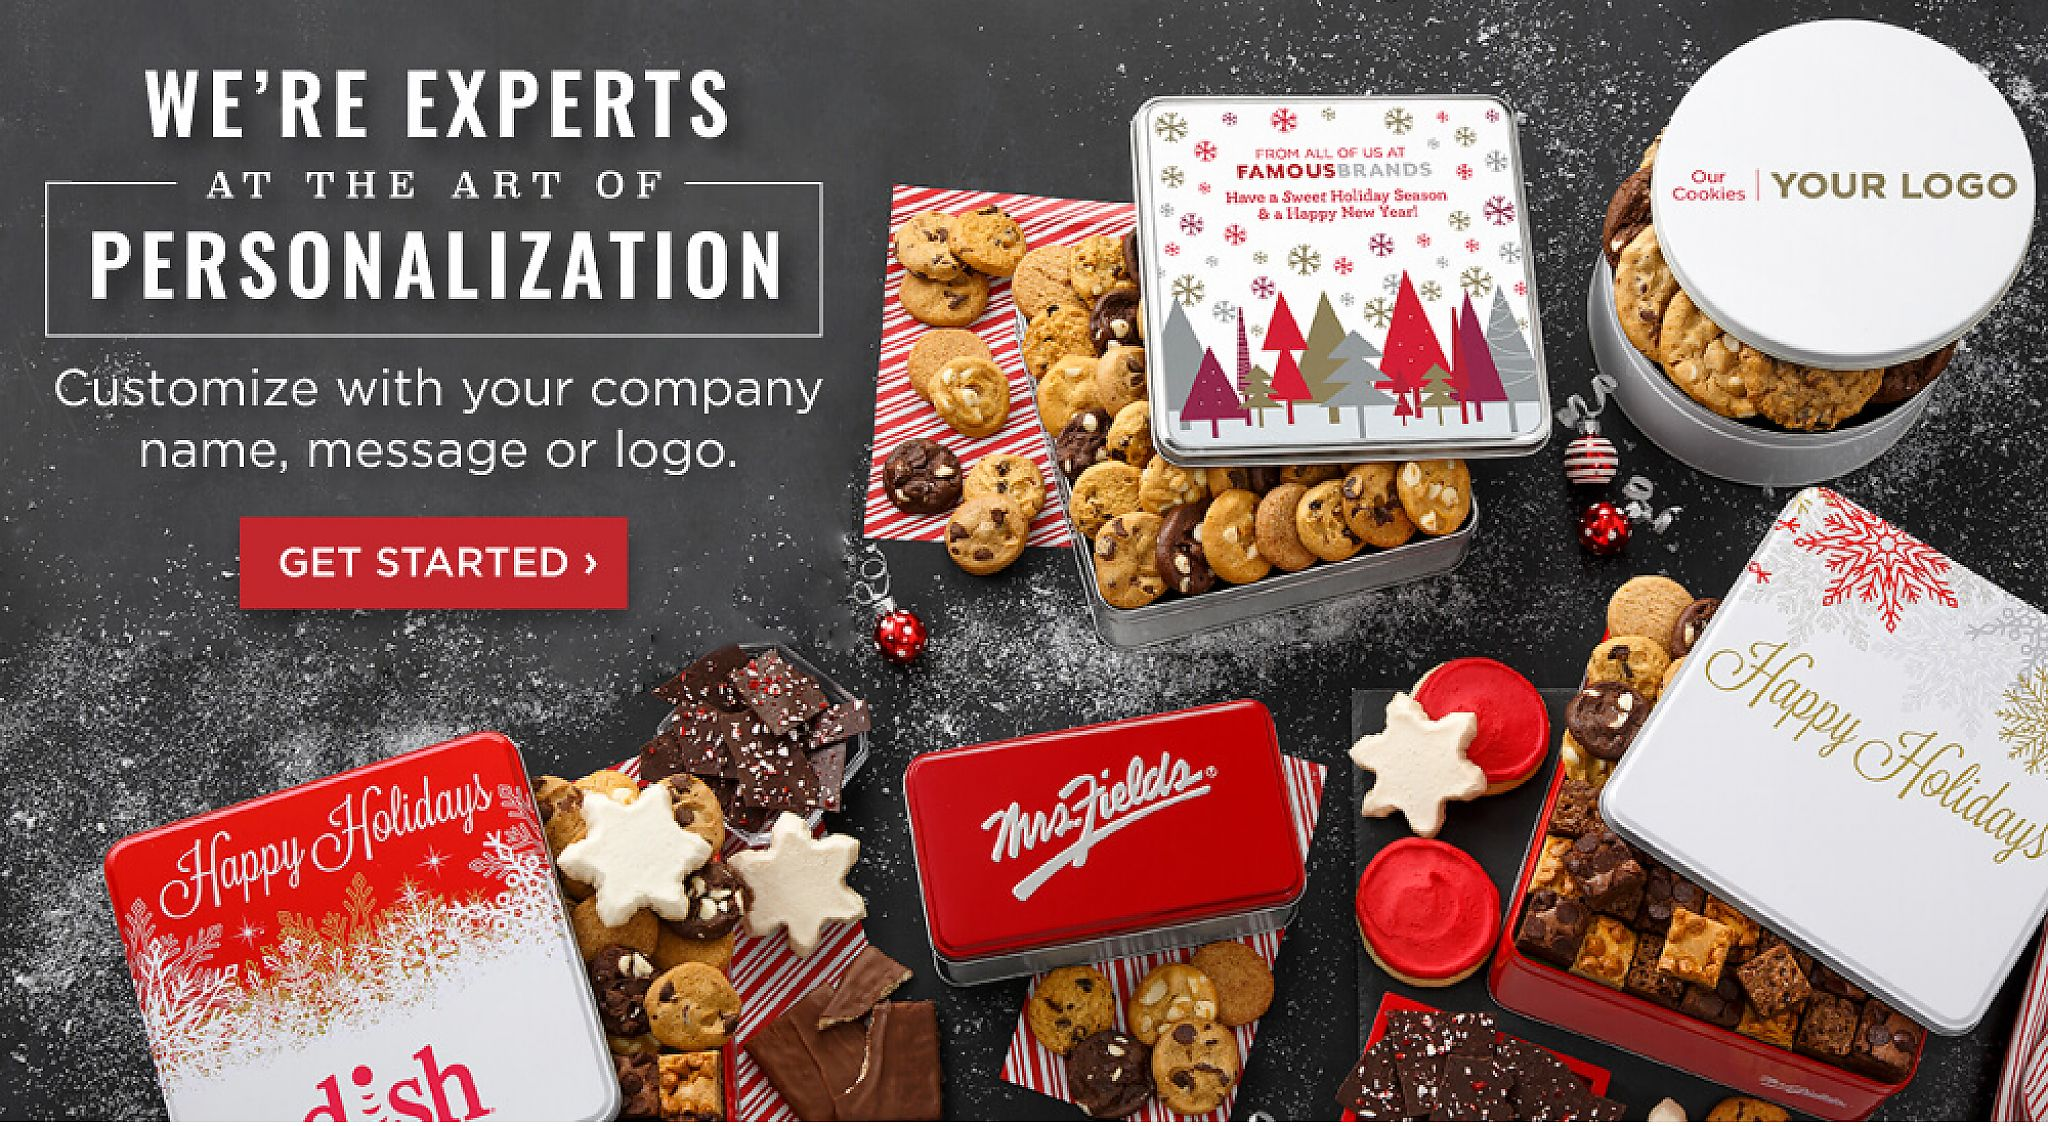 Business Gift Baskets & Corporate Cookie Gifts - MrsFields com